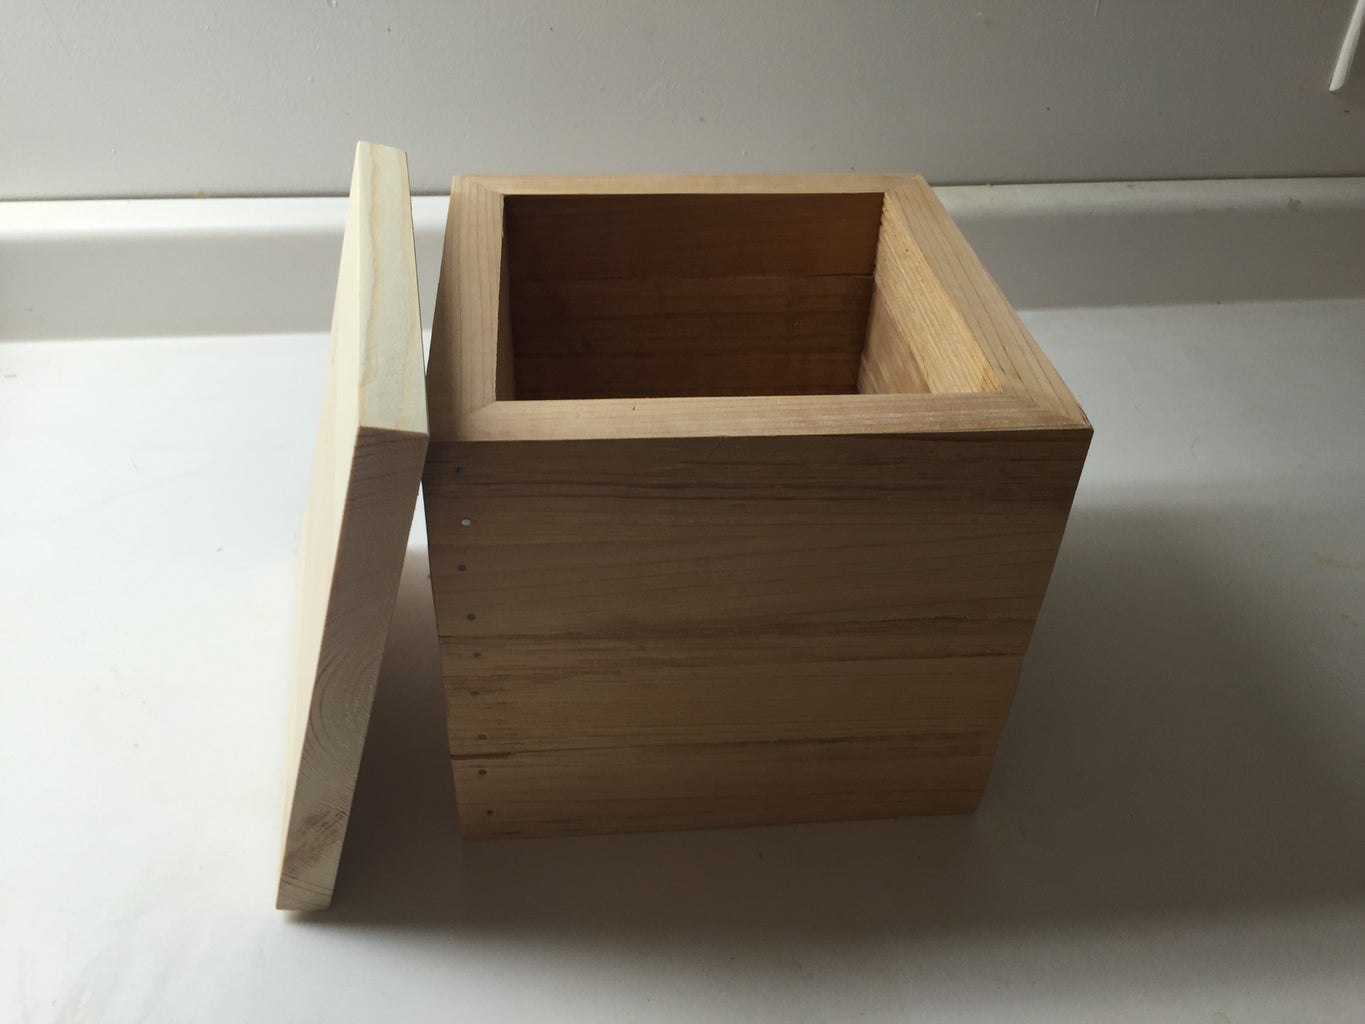 Build a Container